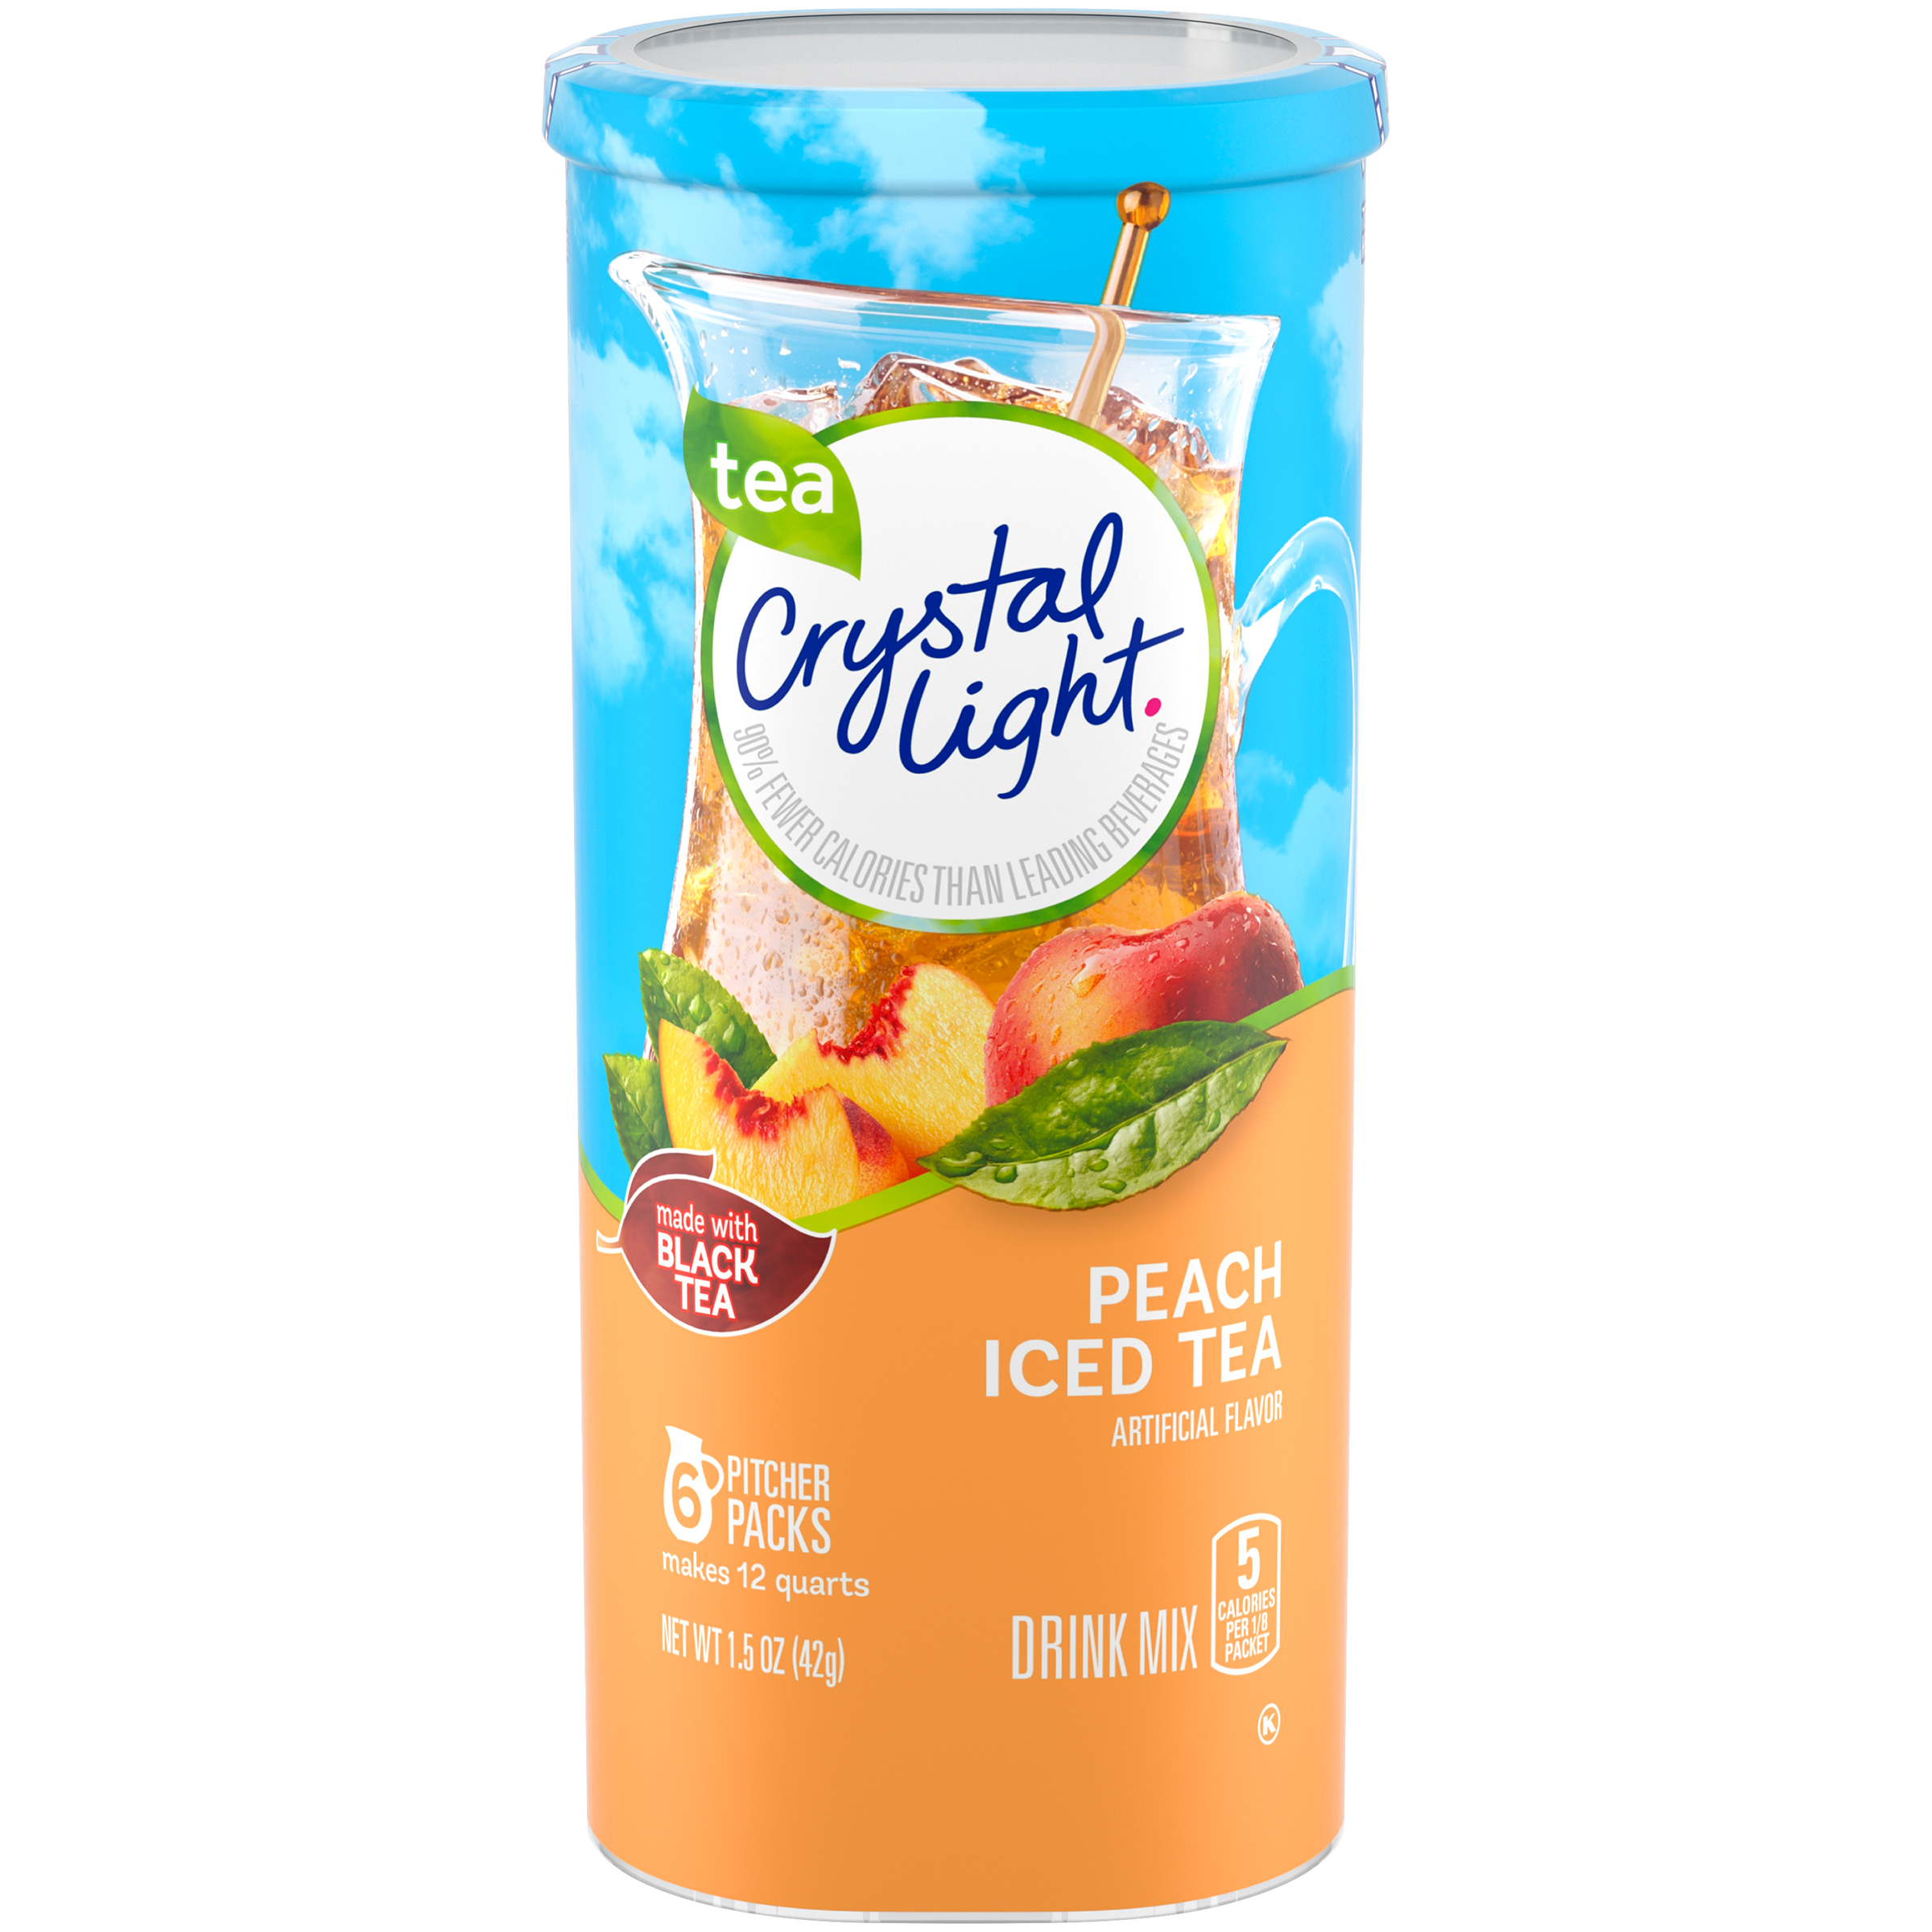 Crystal Light Drink Mix , Peach Iced Tea, 1.5 Oz, 6 Packets, 1 Count